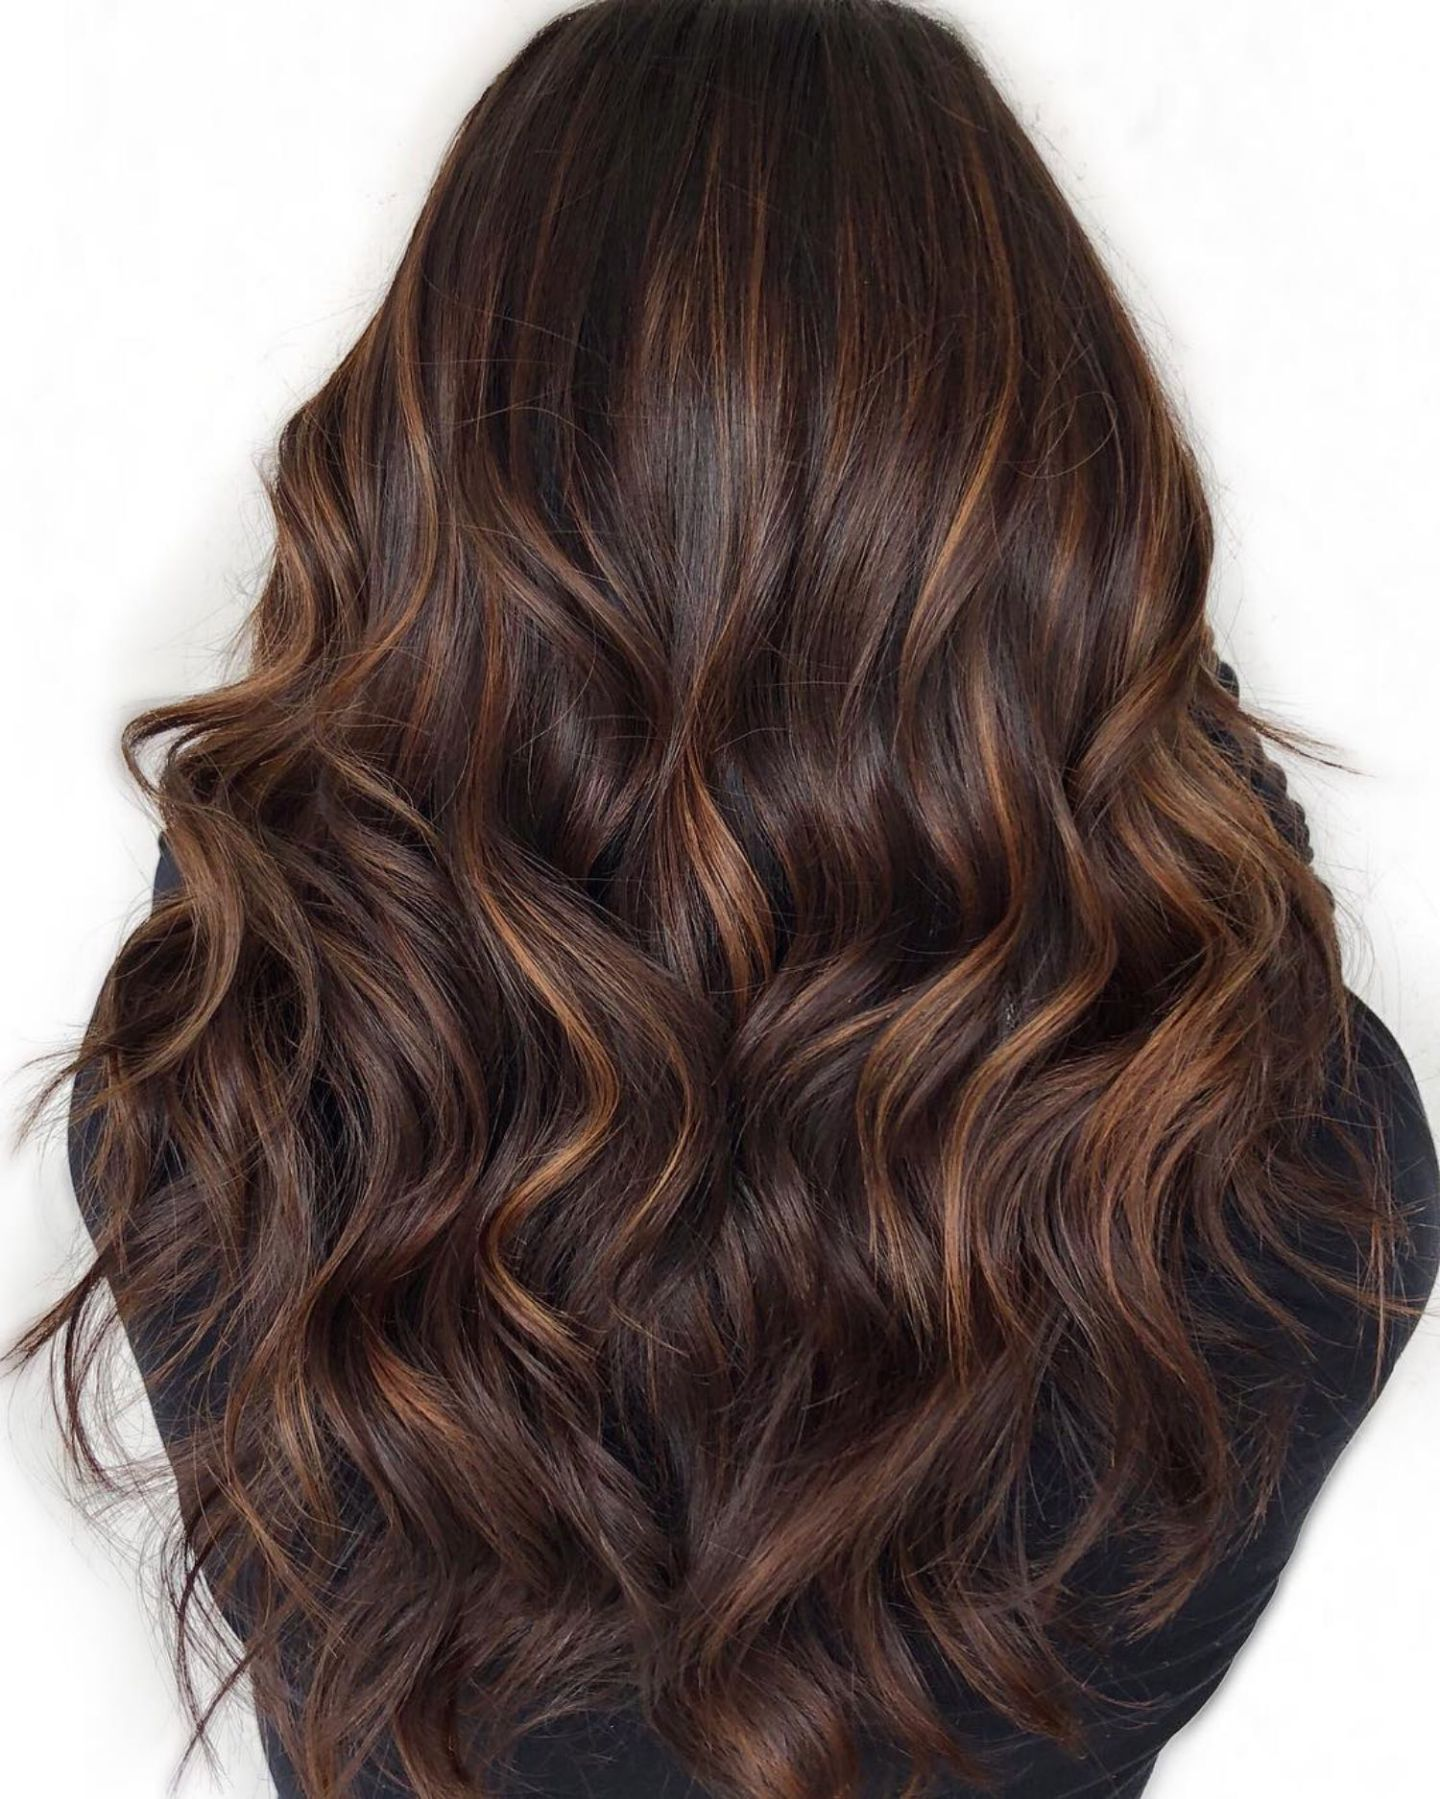 60 Hairstyles Featuring Dark Brown Hair With Highlights Dark Hair With Highlights Brown Hair With Highlights Brown Hair Shades